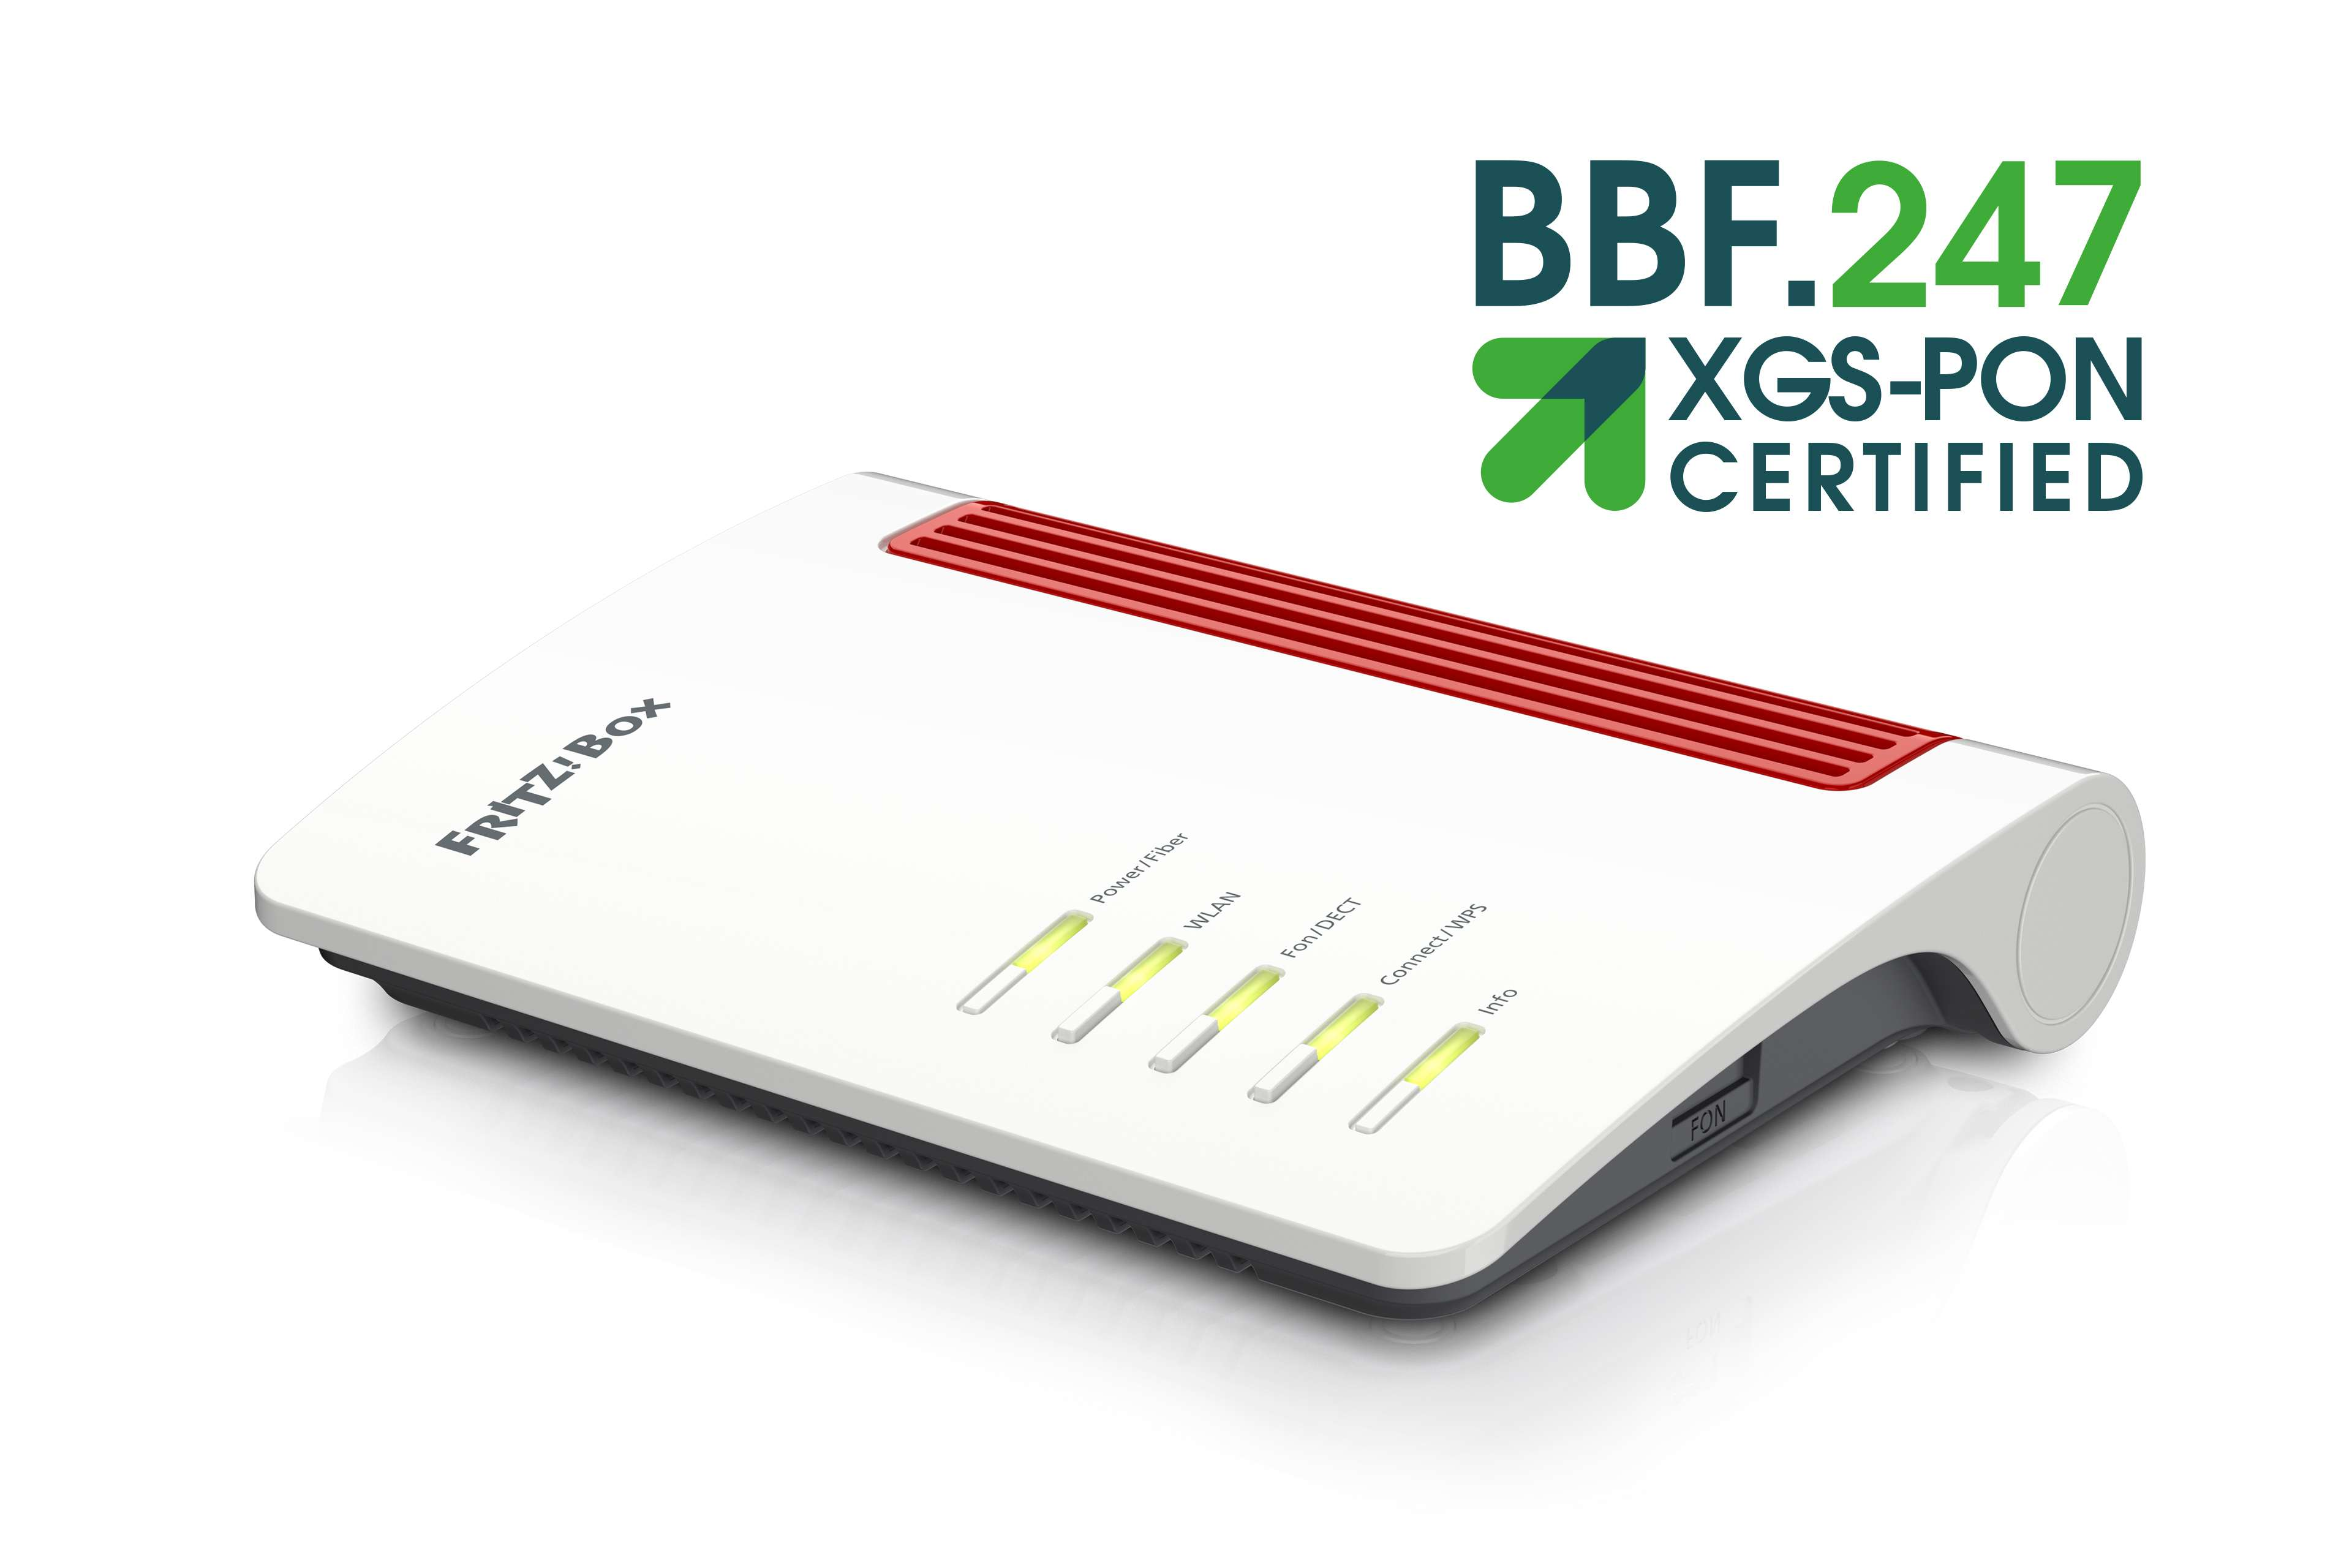 AVM FRITZBox 5530 BBF 247 Certified XGS PON 1